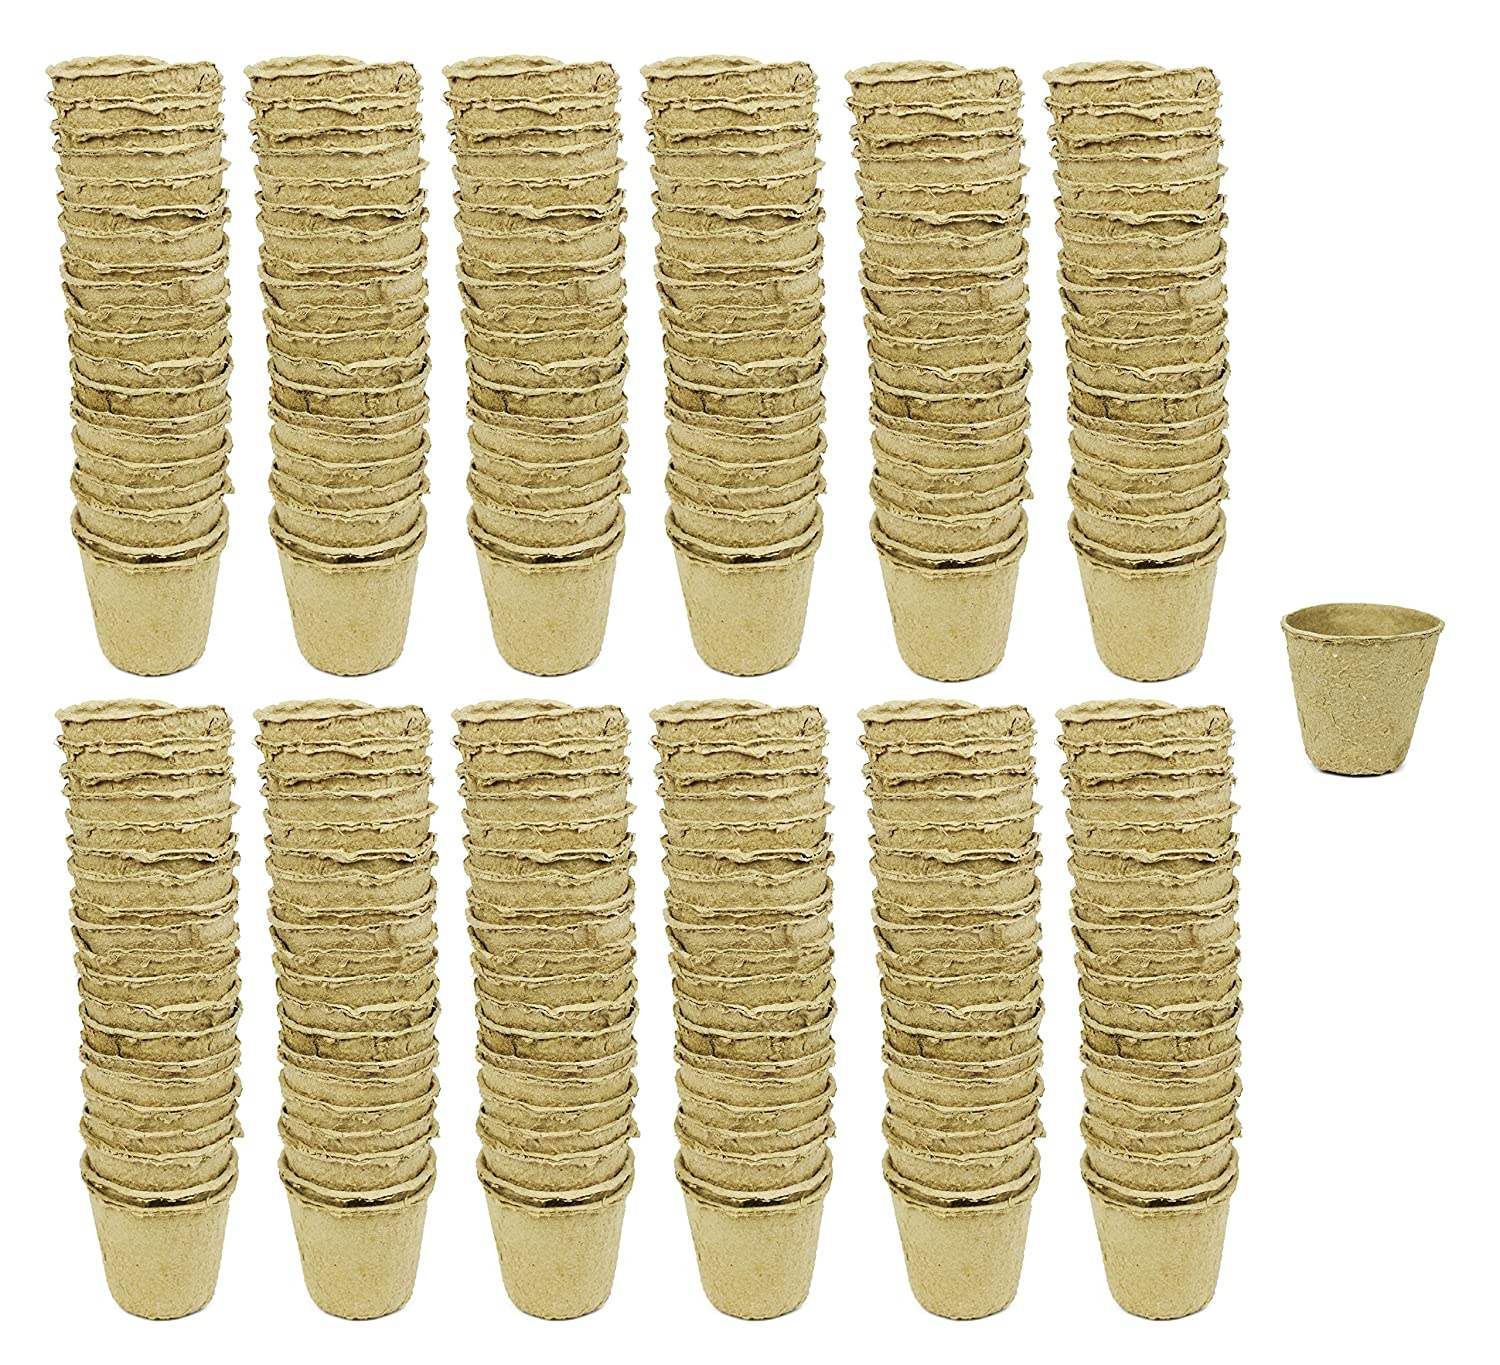 Set of 192 Biodegradable Eco Friendly Peat Pots 3.125 Diameter x 3 – Recycled Non Bleached Peat Pots Perfect for Seed Germination No Transplanting Required – No More Damaged Roots